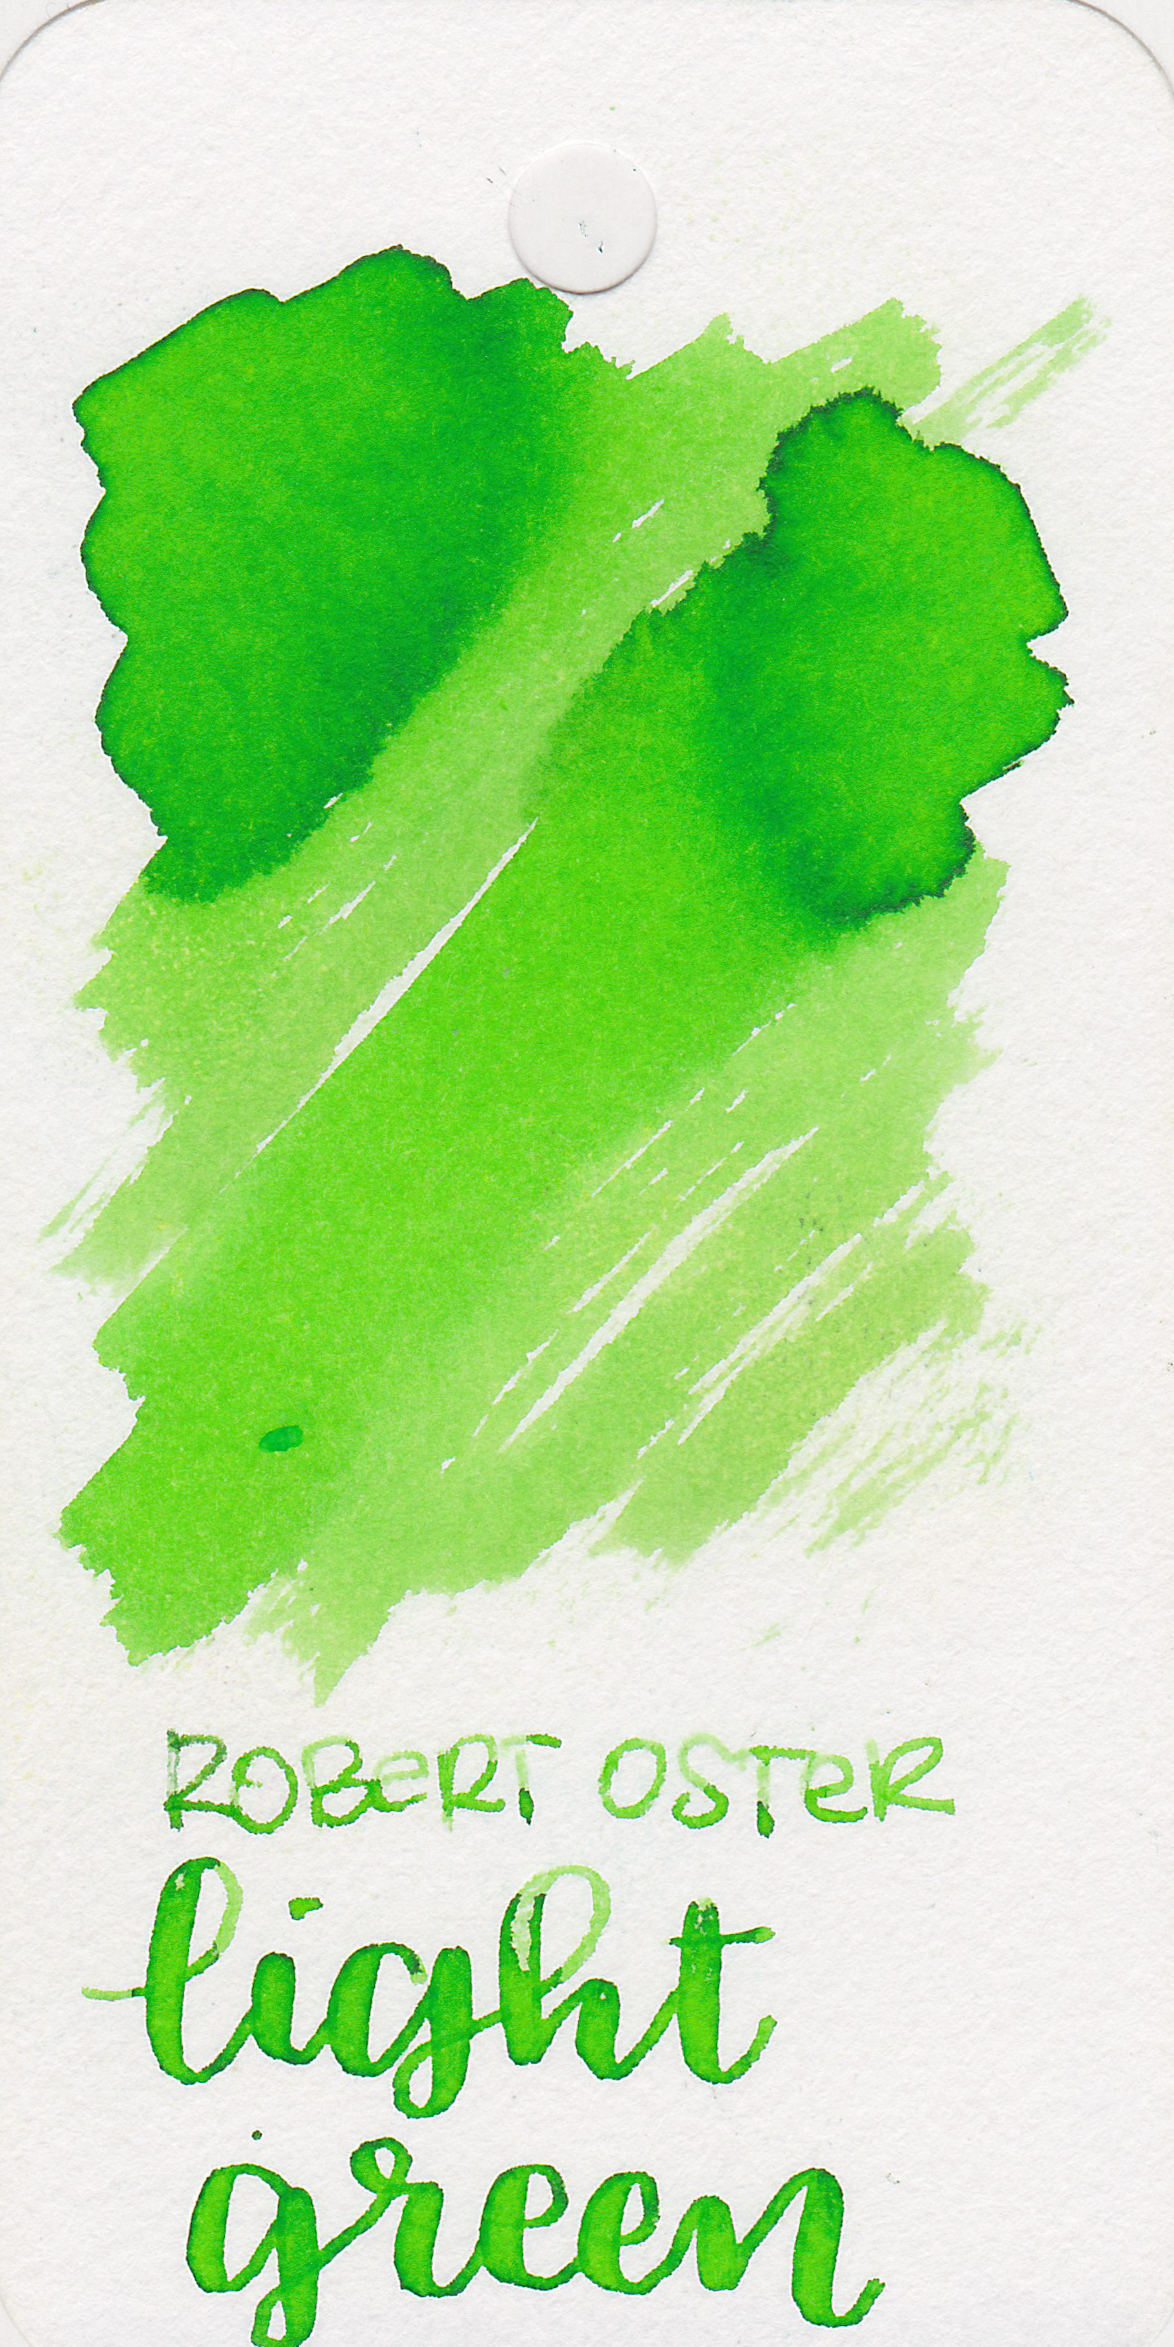 Robert Oster Light Green - Dries in 15 seconds and has some lovely medium shading. I don't think Robert Oster green inks get enough attention. His greens are just as good as his blues.